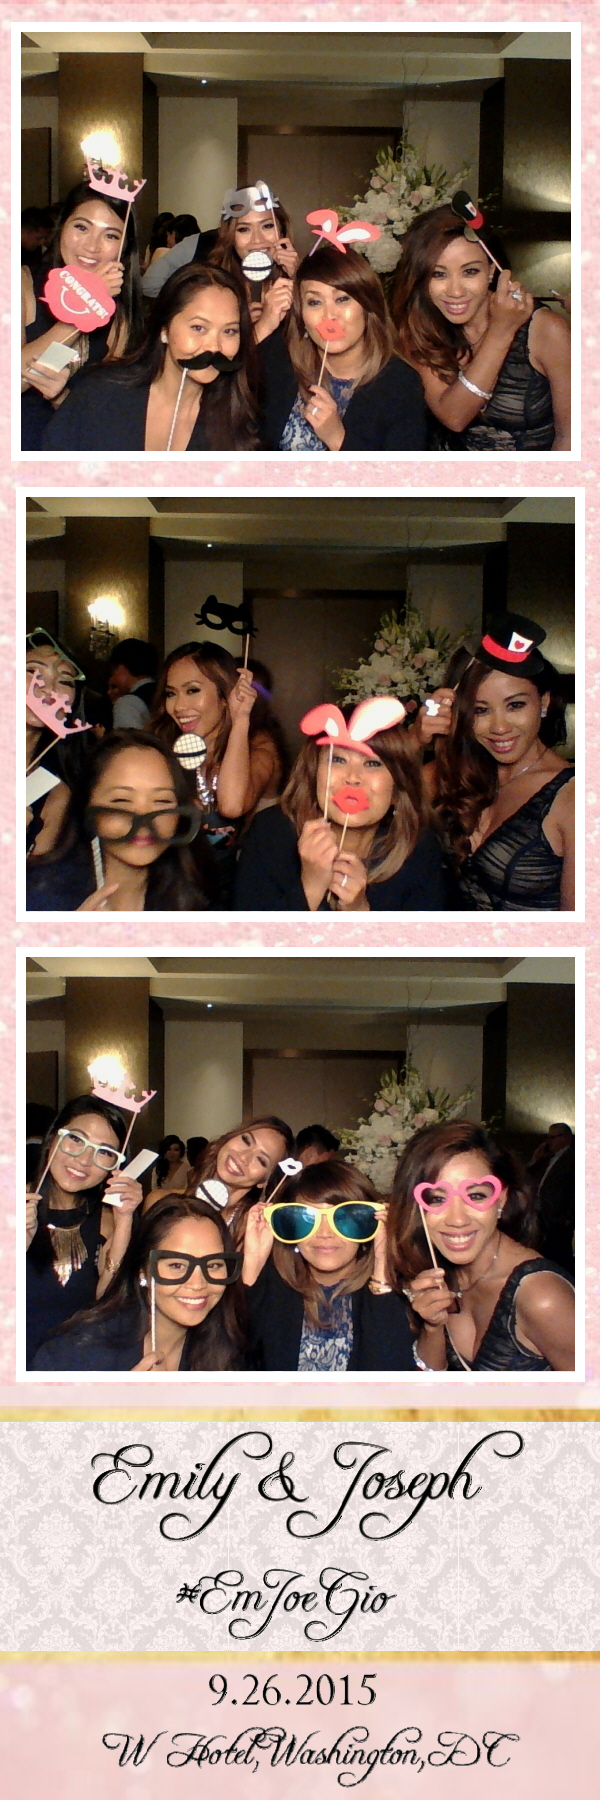 Guest House Events Photo Booth E&J (19).jpg